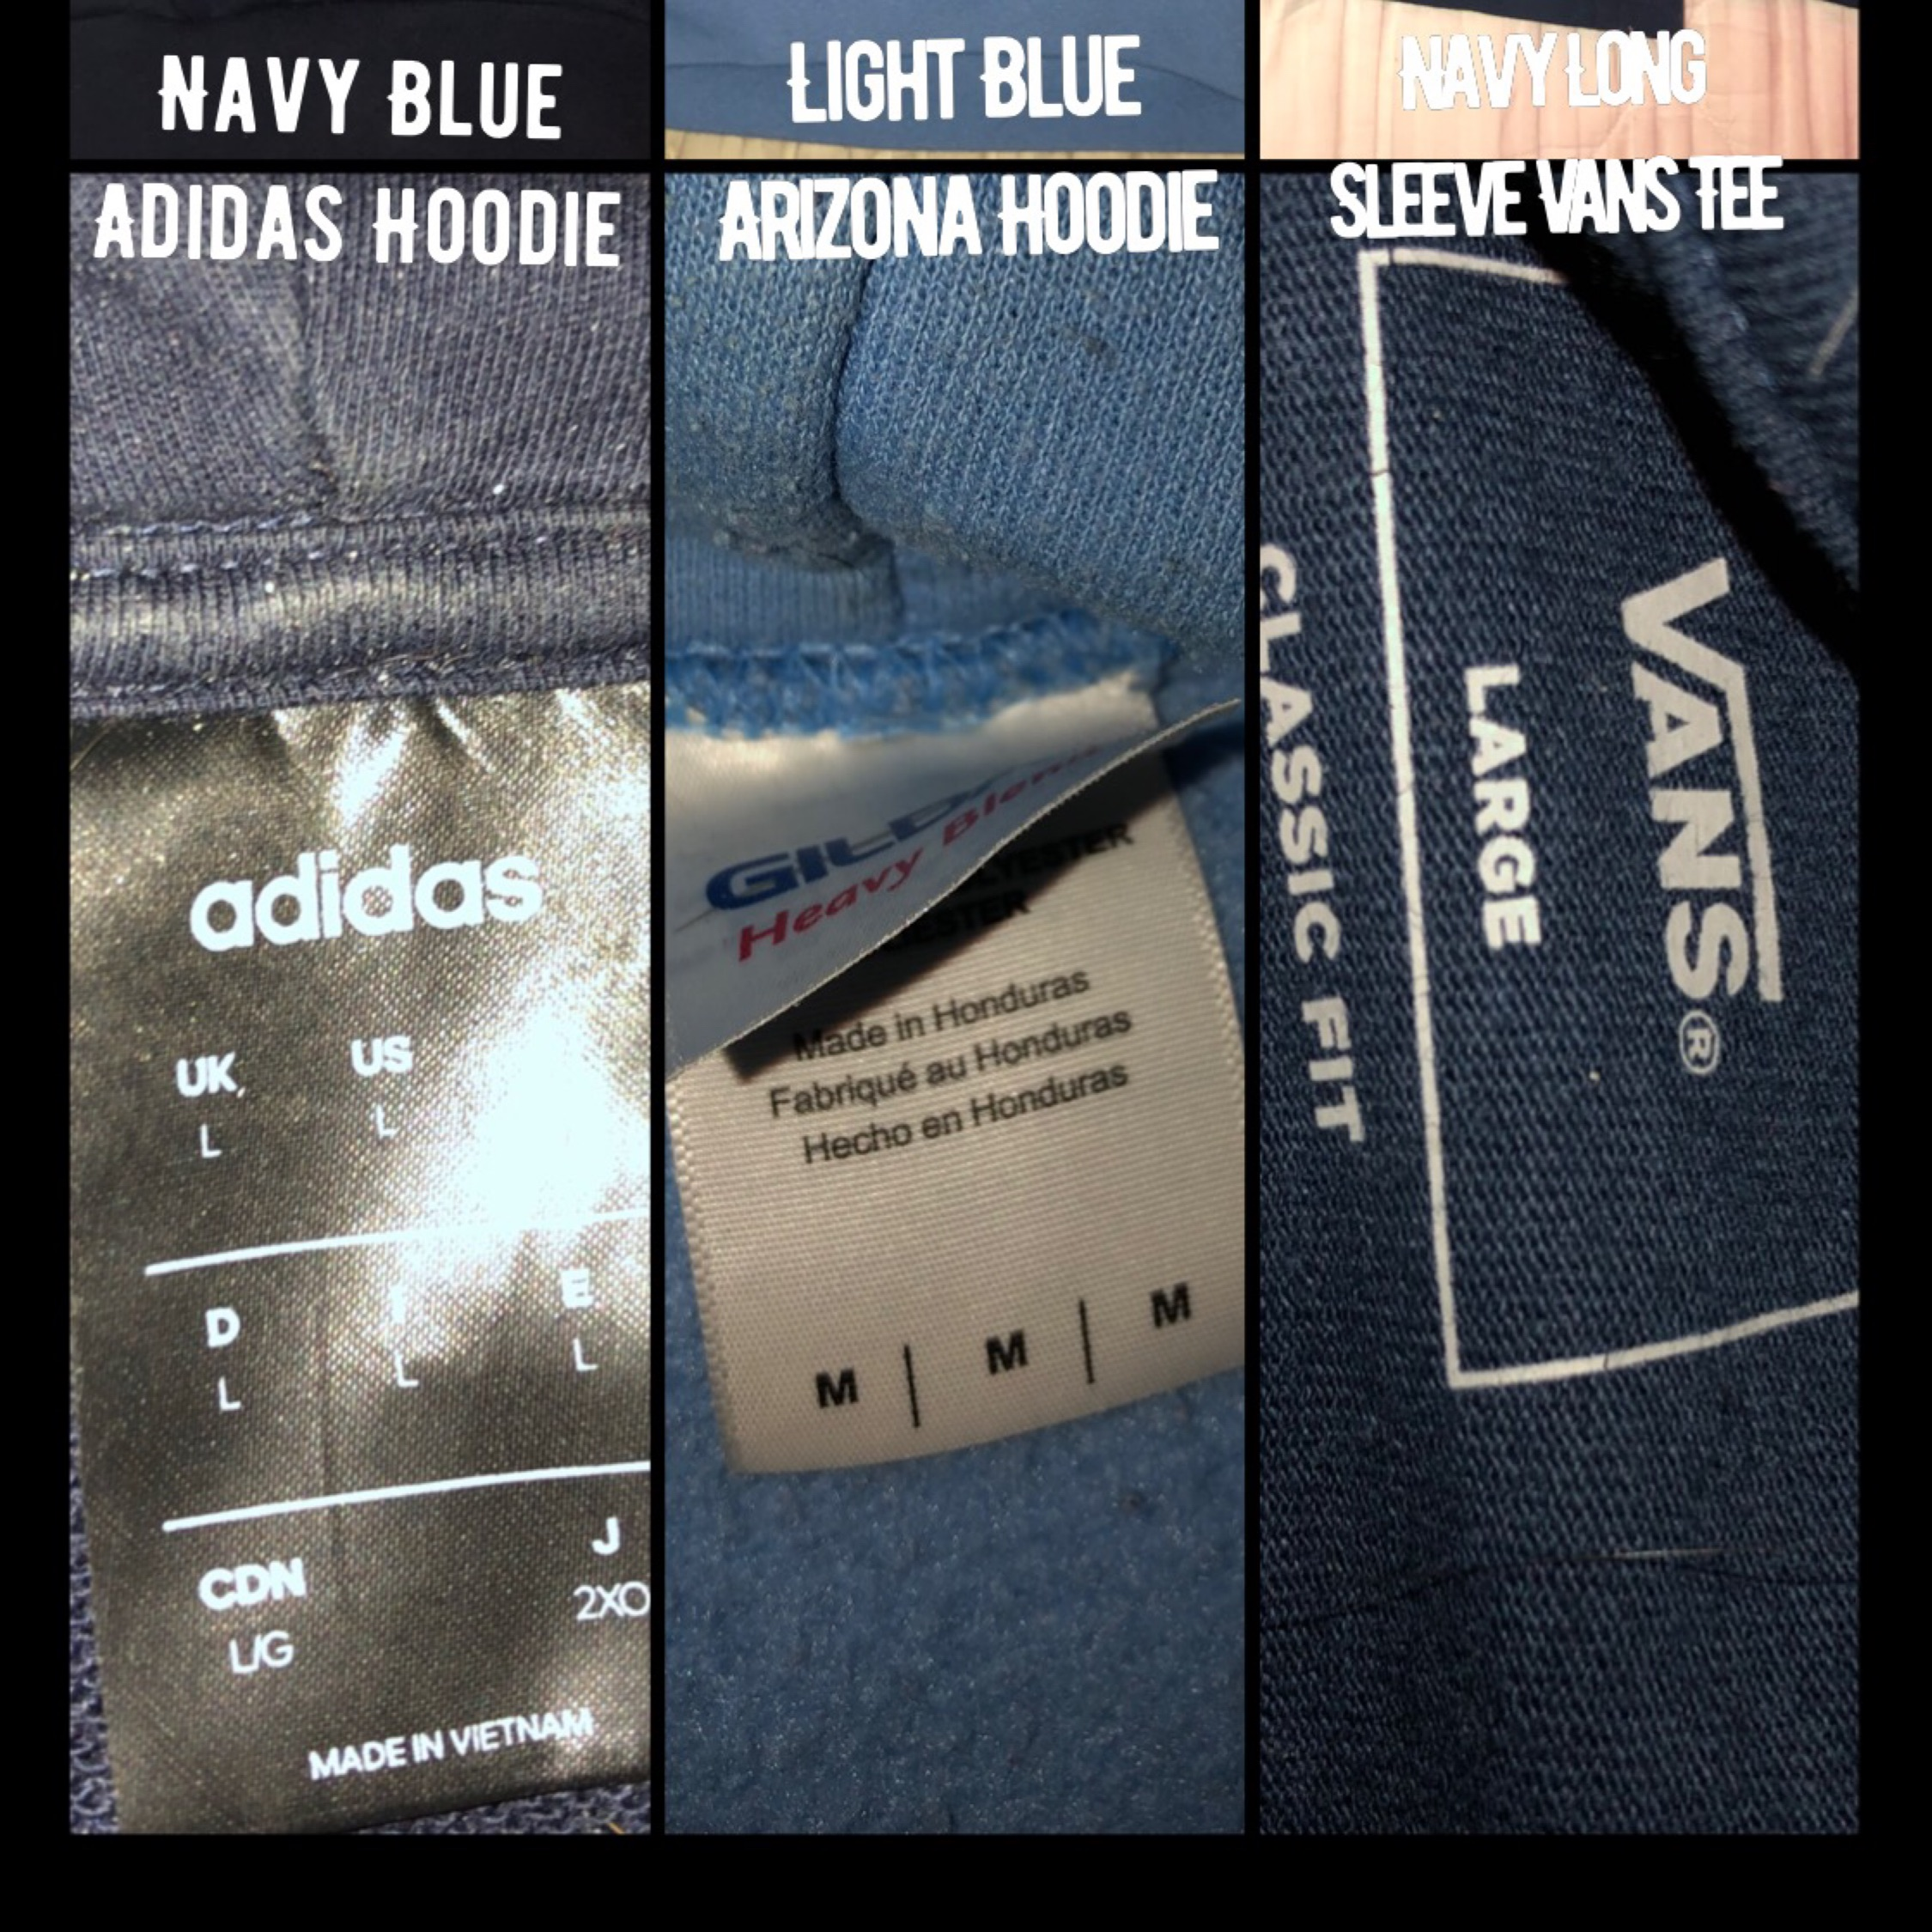 vans size to adidas